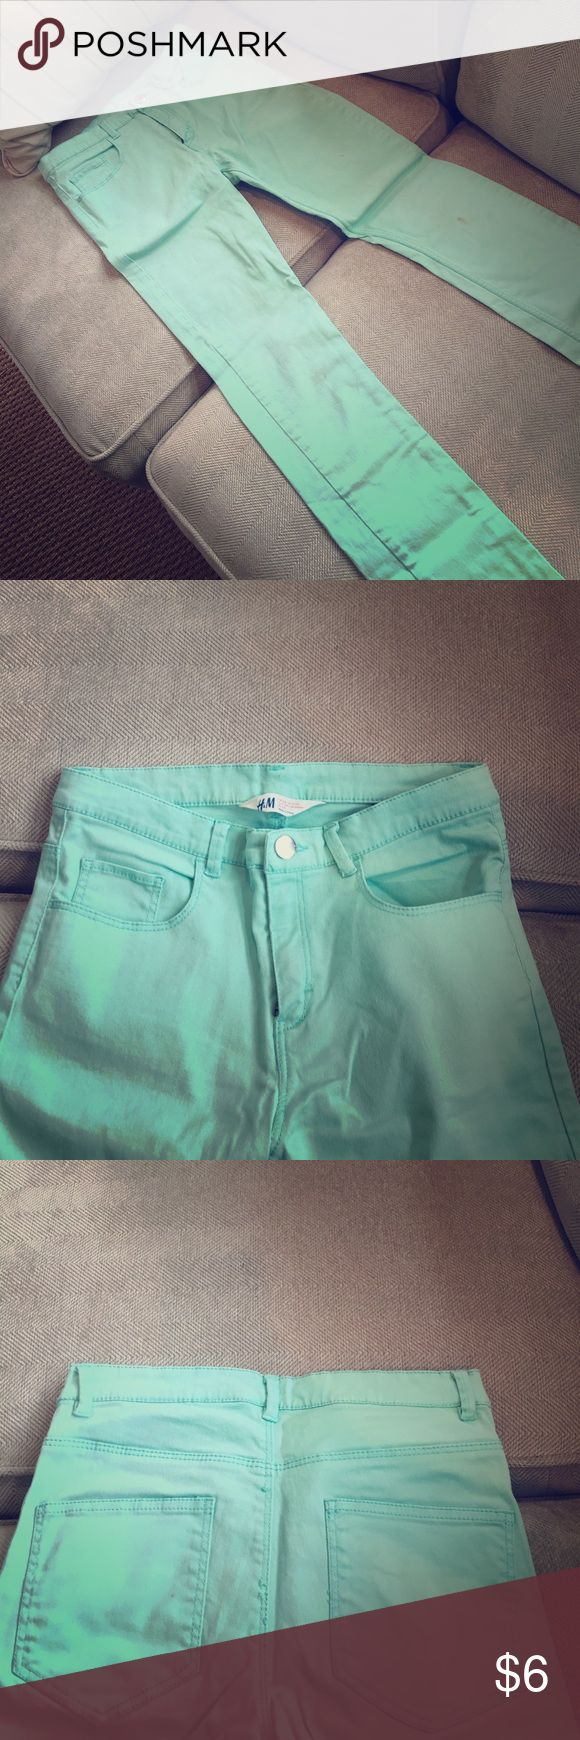 Mint Green Jeans Such a fun and summery color. Have a slight stain by the knee, so price has been way reduced. Please let me know if you want more picture or have any questions. H&M Jeans